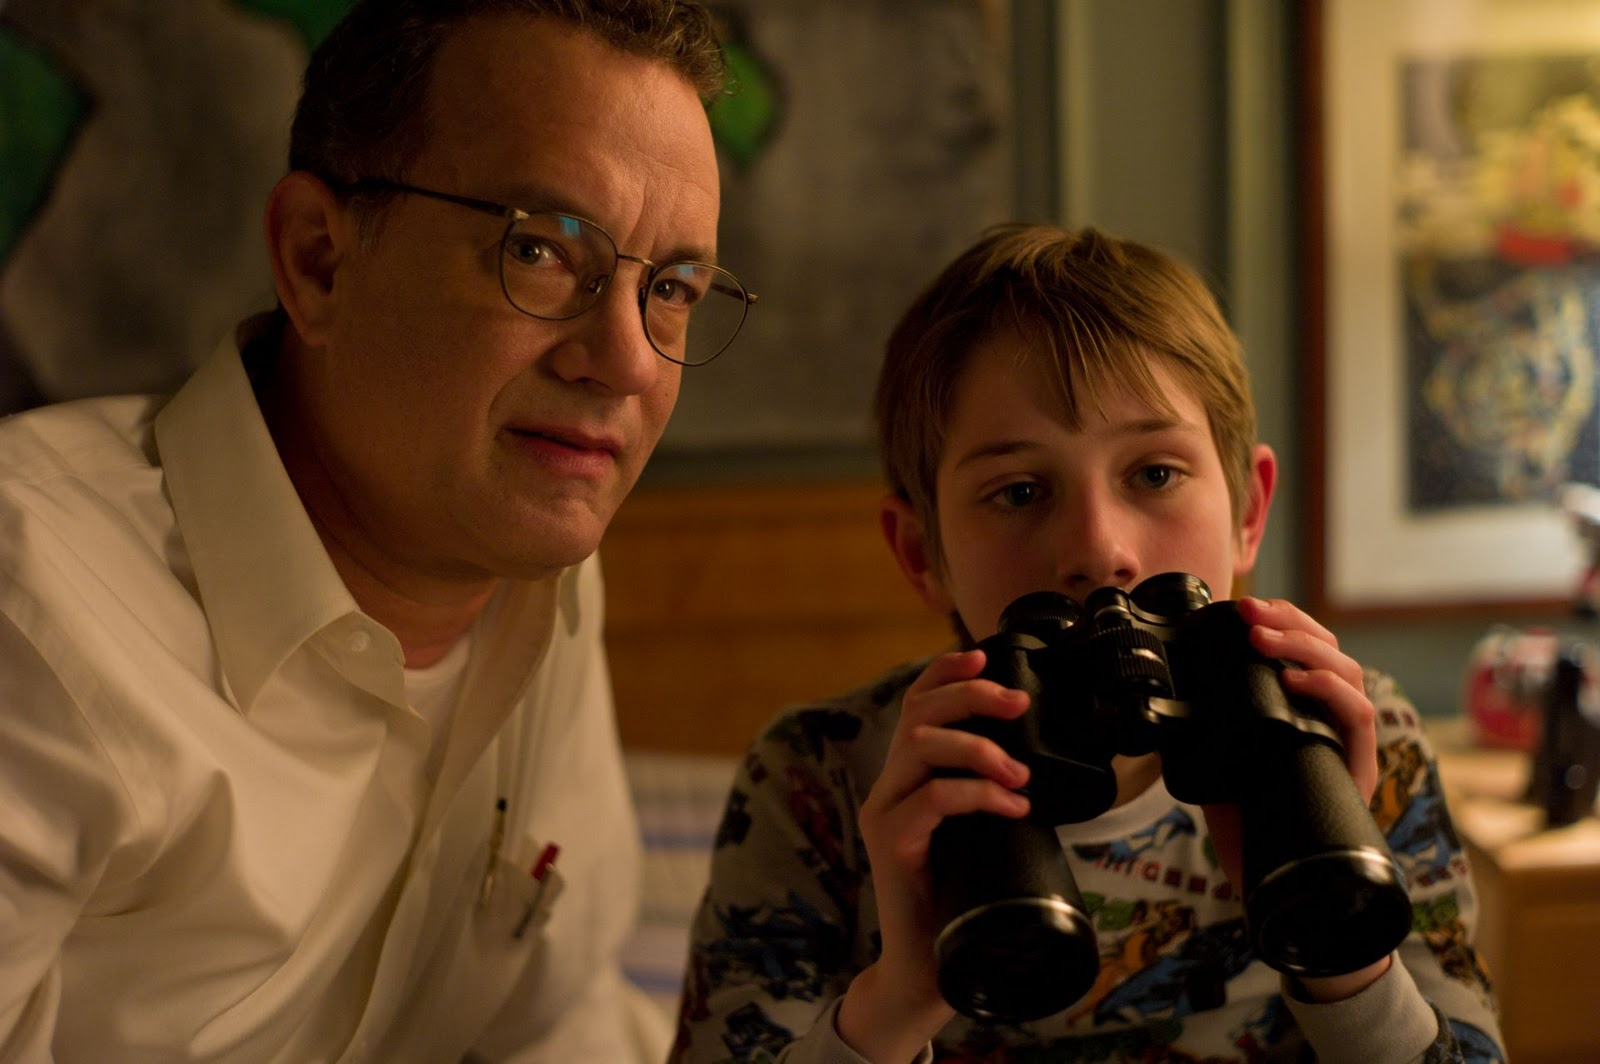 2012 the ace black blog movie review extremely loud and incredibly close 2011